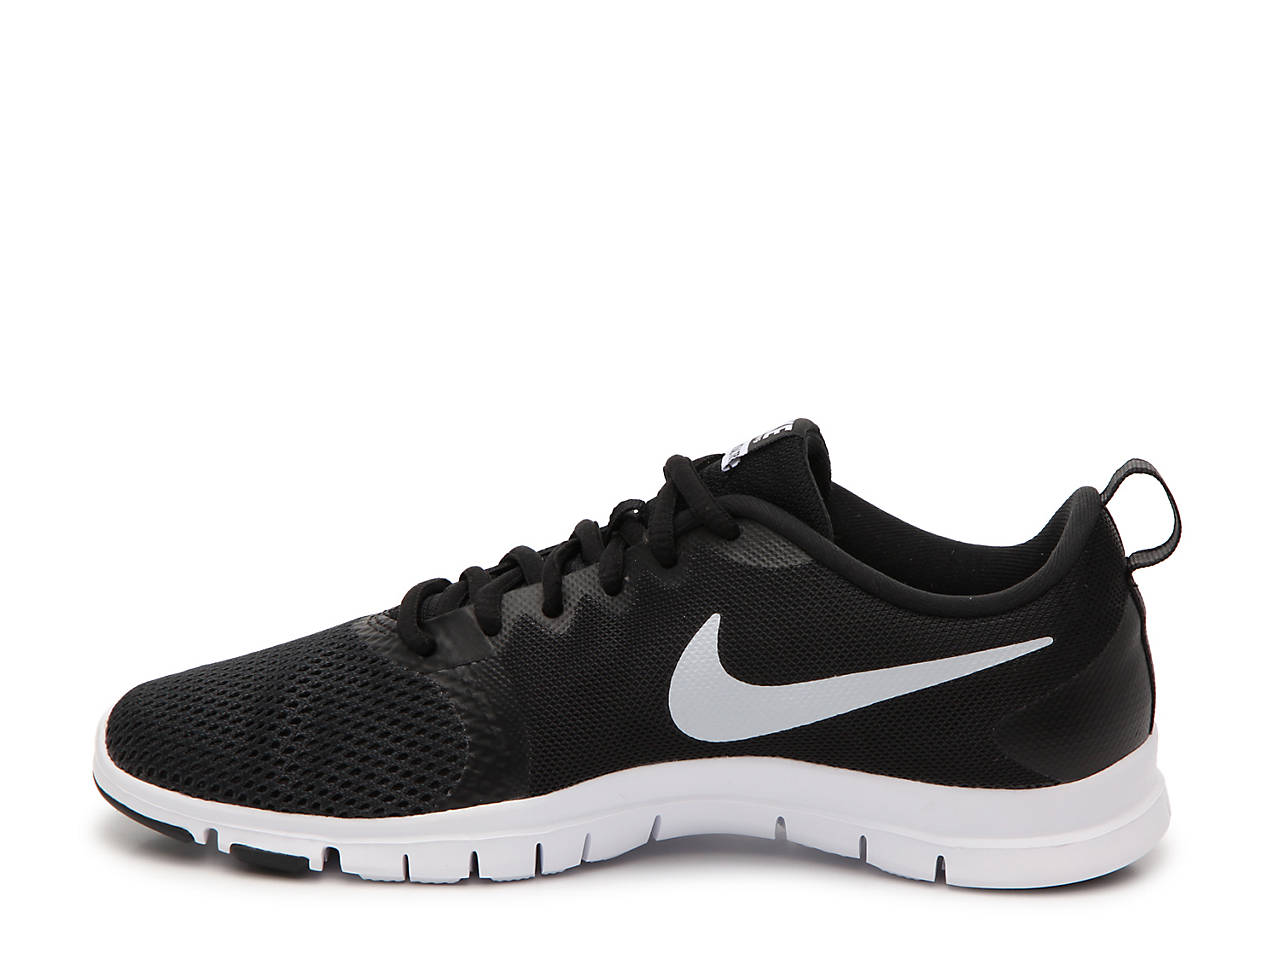 Nike Flex Essential TR Lightweight Training Shoe - Women s Women s ... 78eef125d